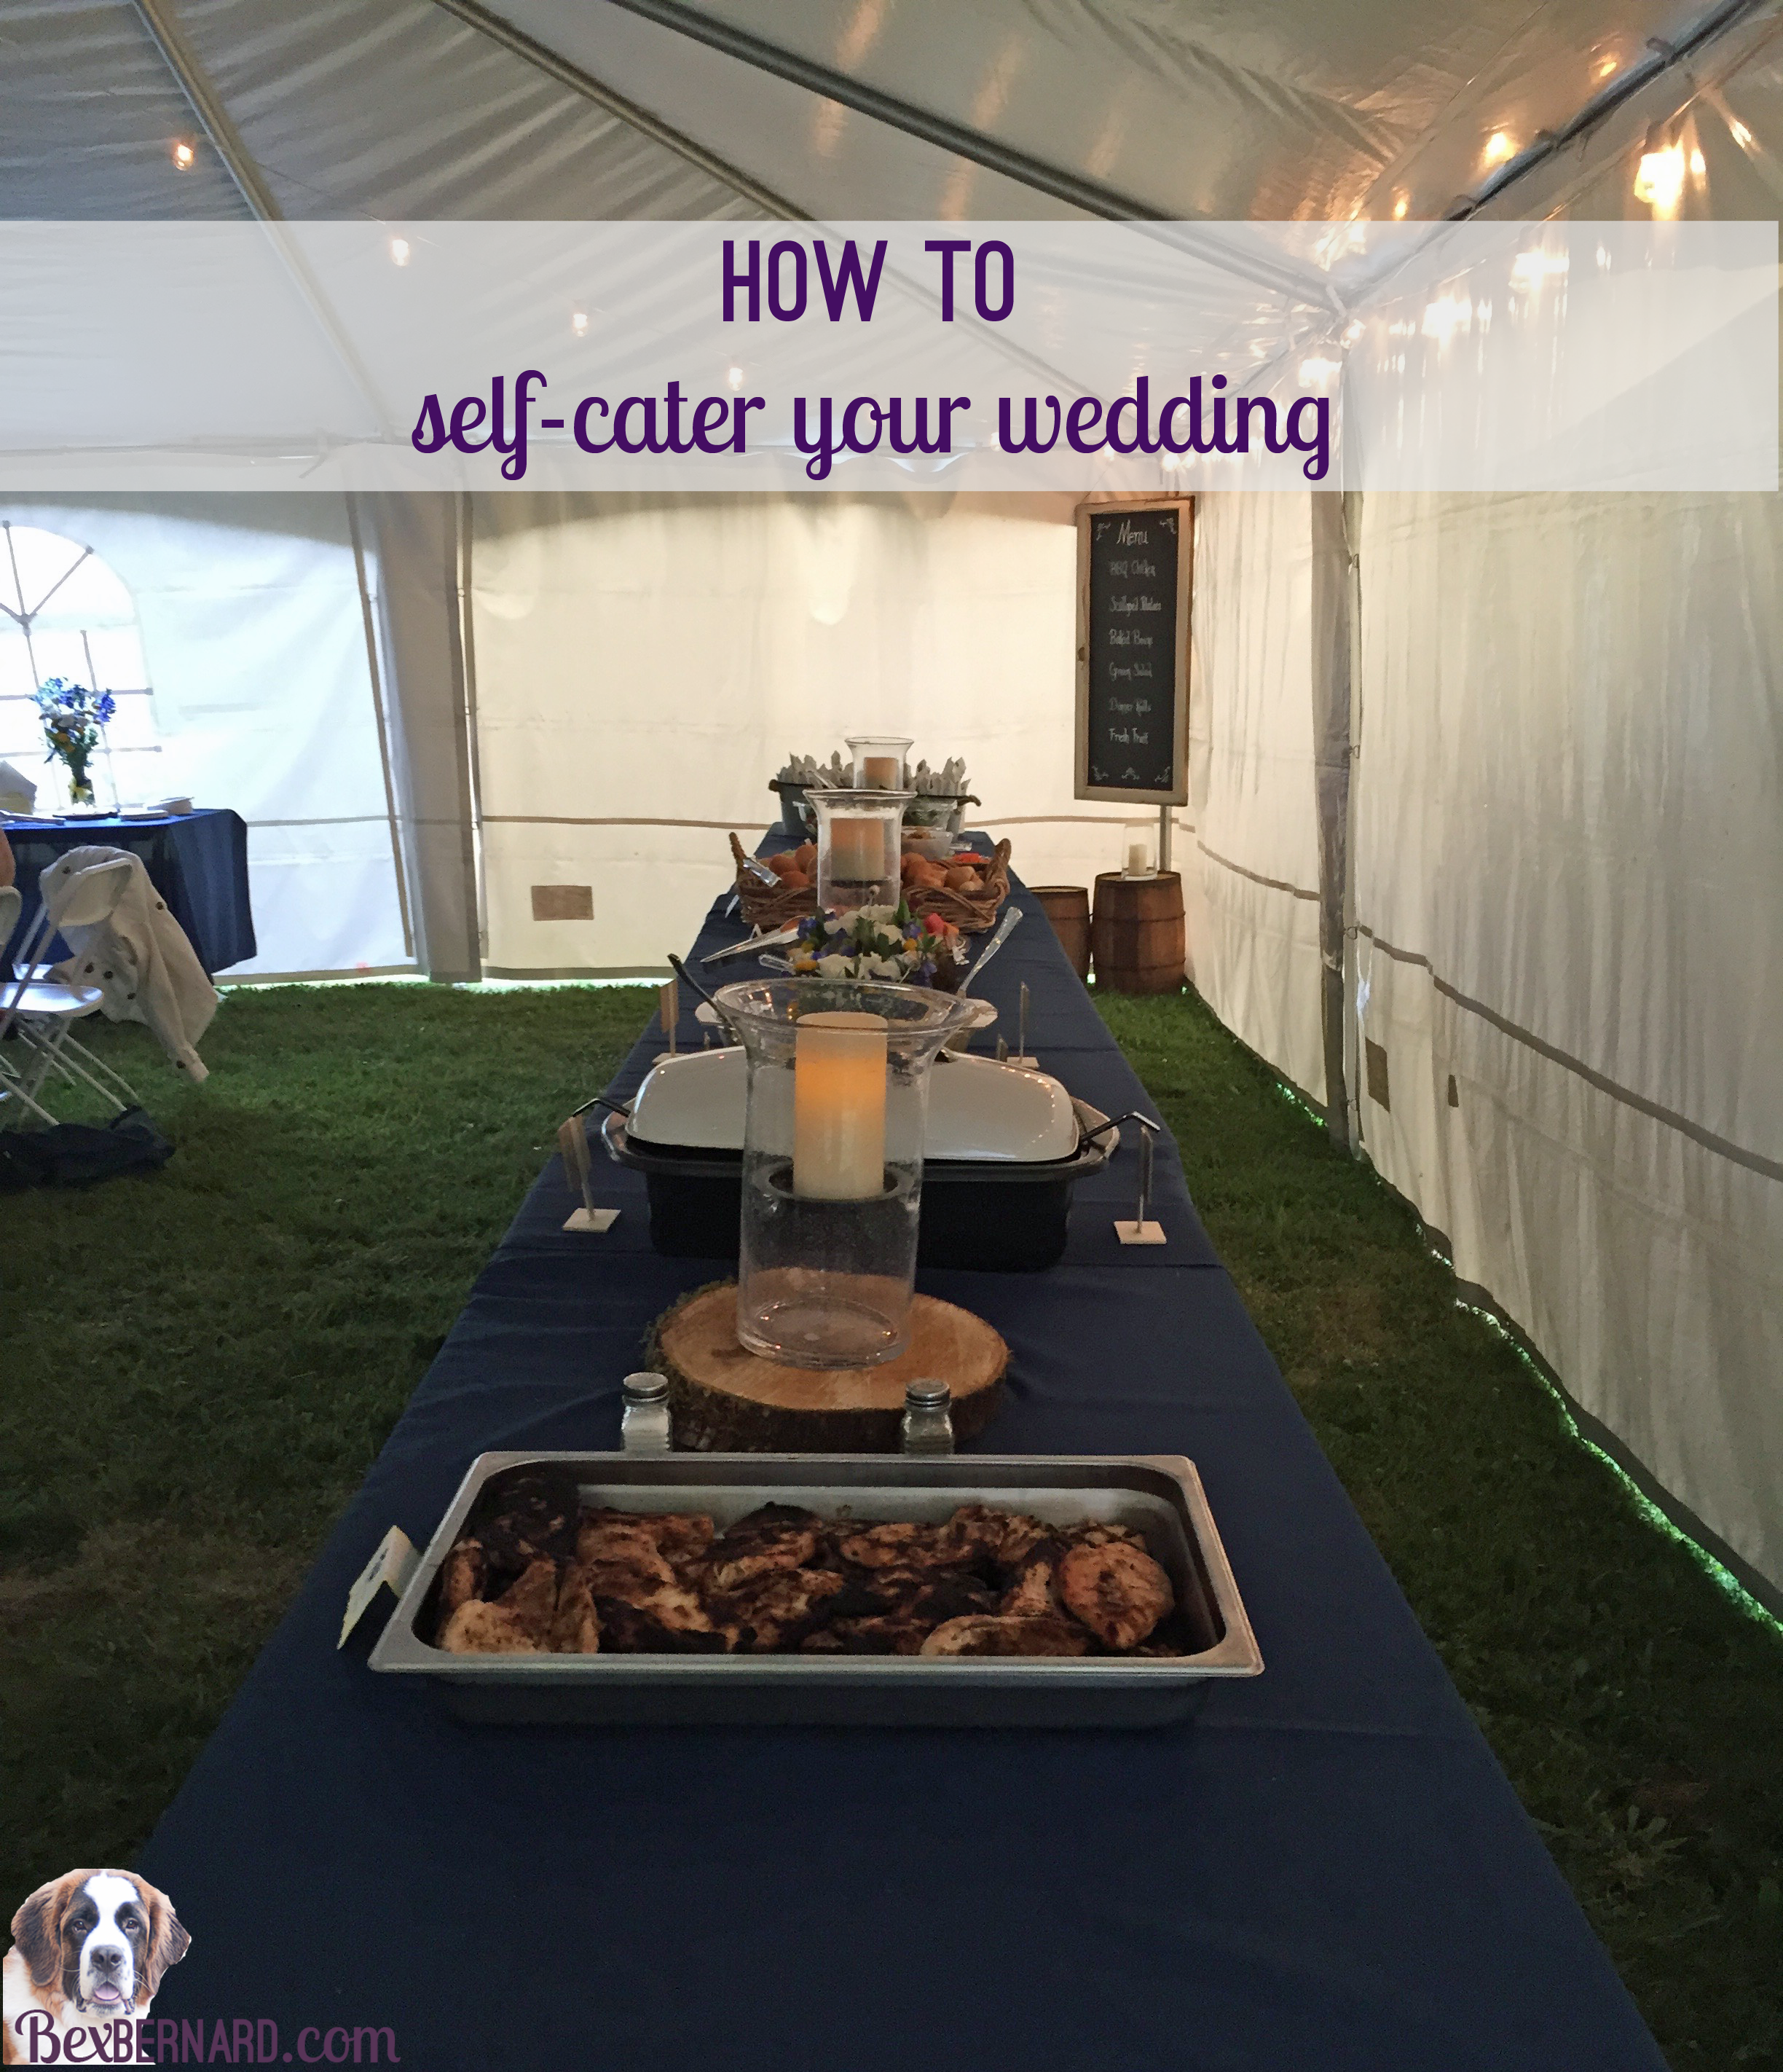 Self-catered Wedding Menu And Timeline